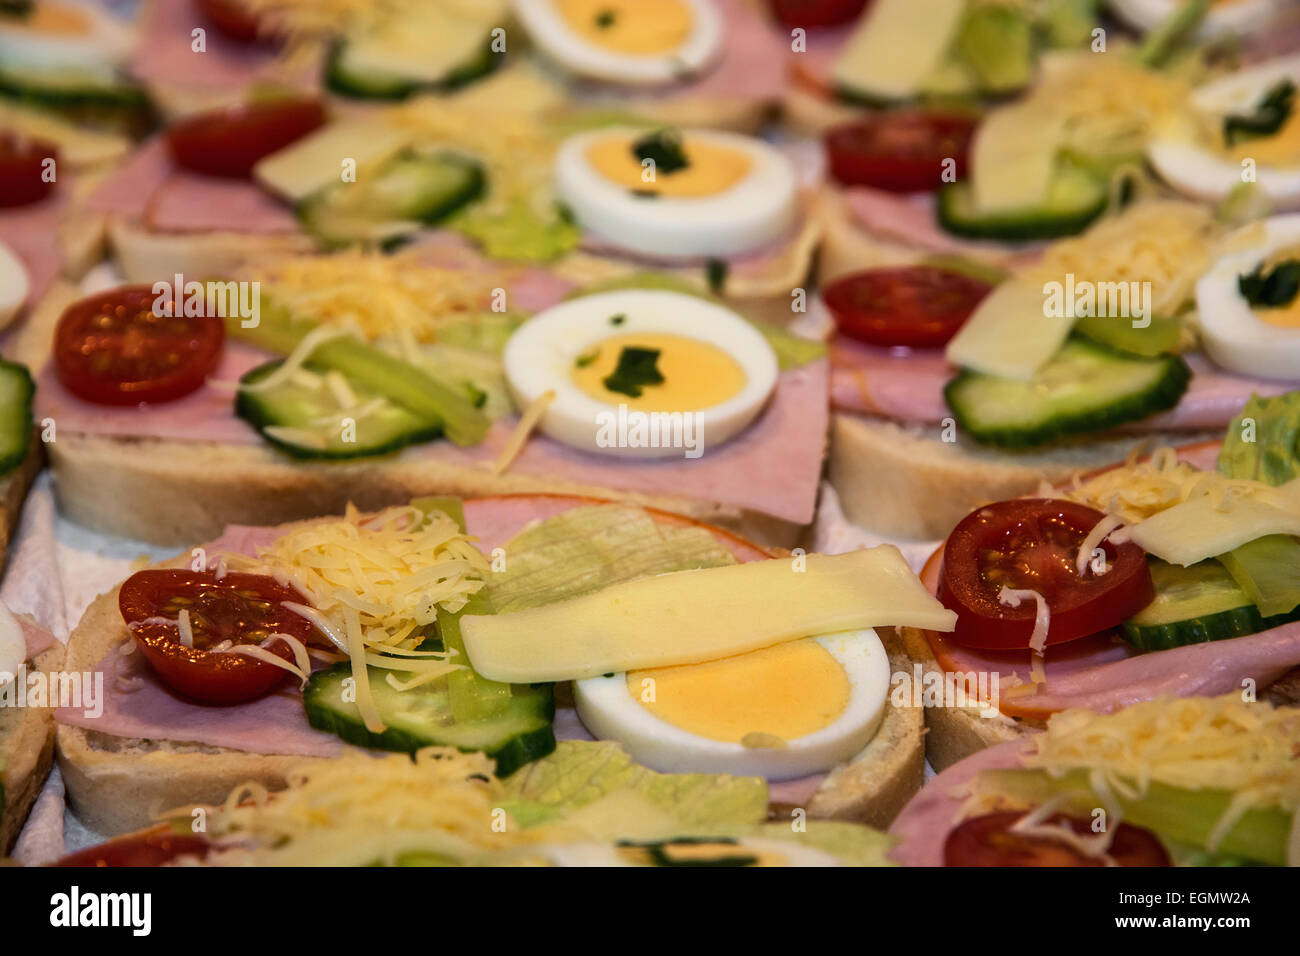 Sandwiches with egg, cheese, cucumber, ham and cherry tomatoes. Food and drink theme. Stock Photo